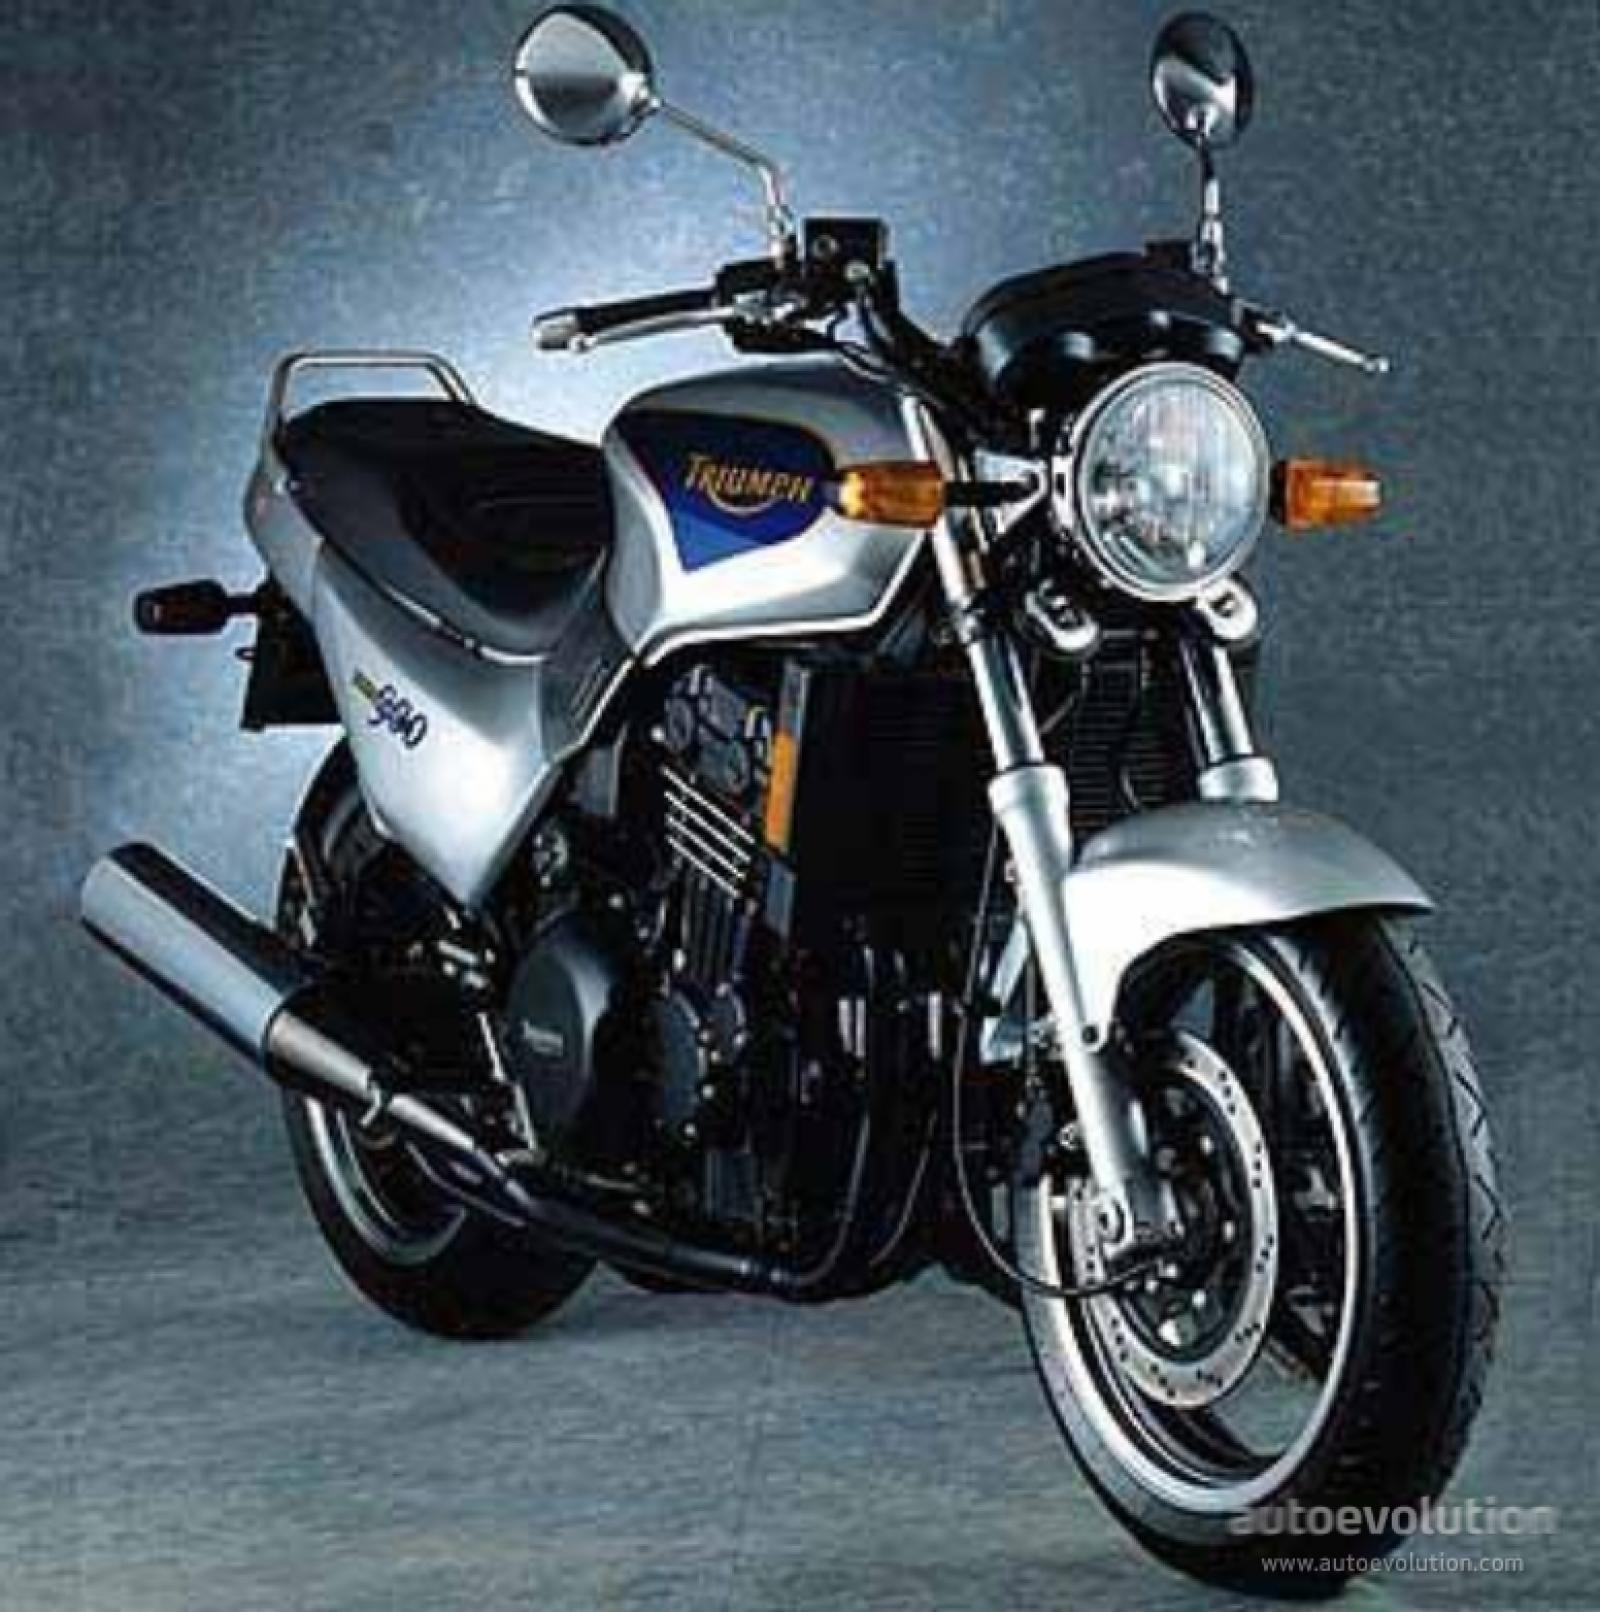 Triumph Trident 900 1997 wallpapers #130493